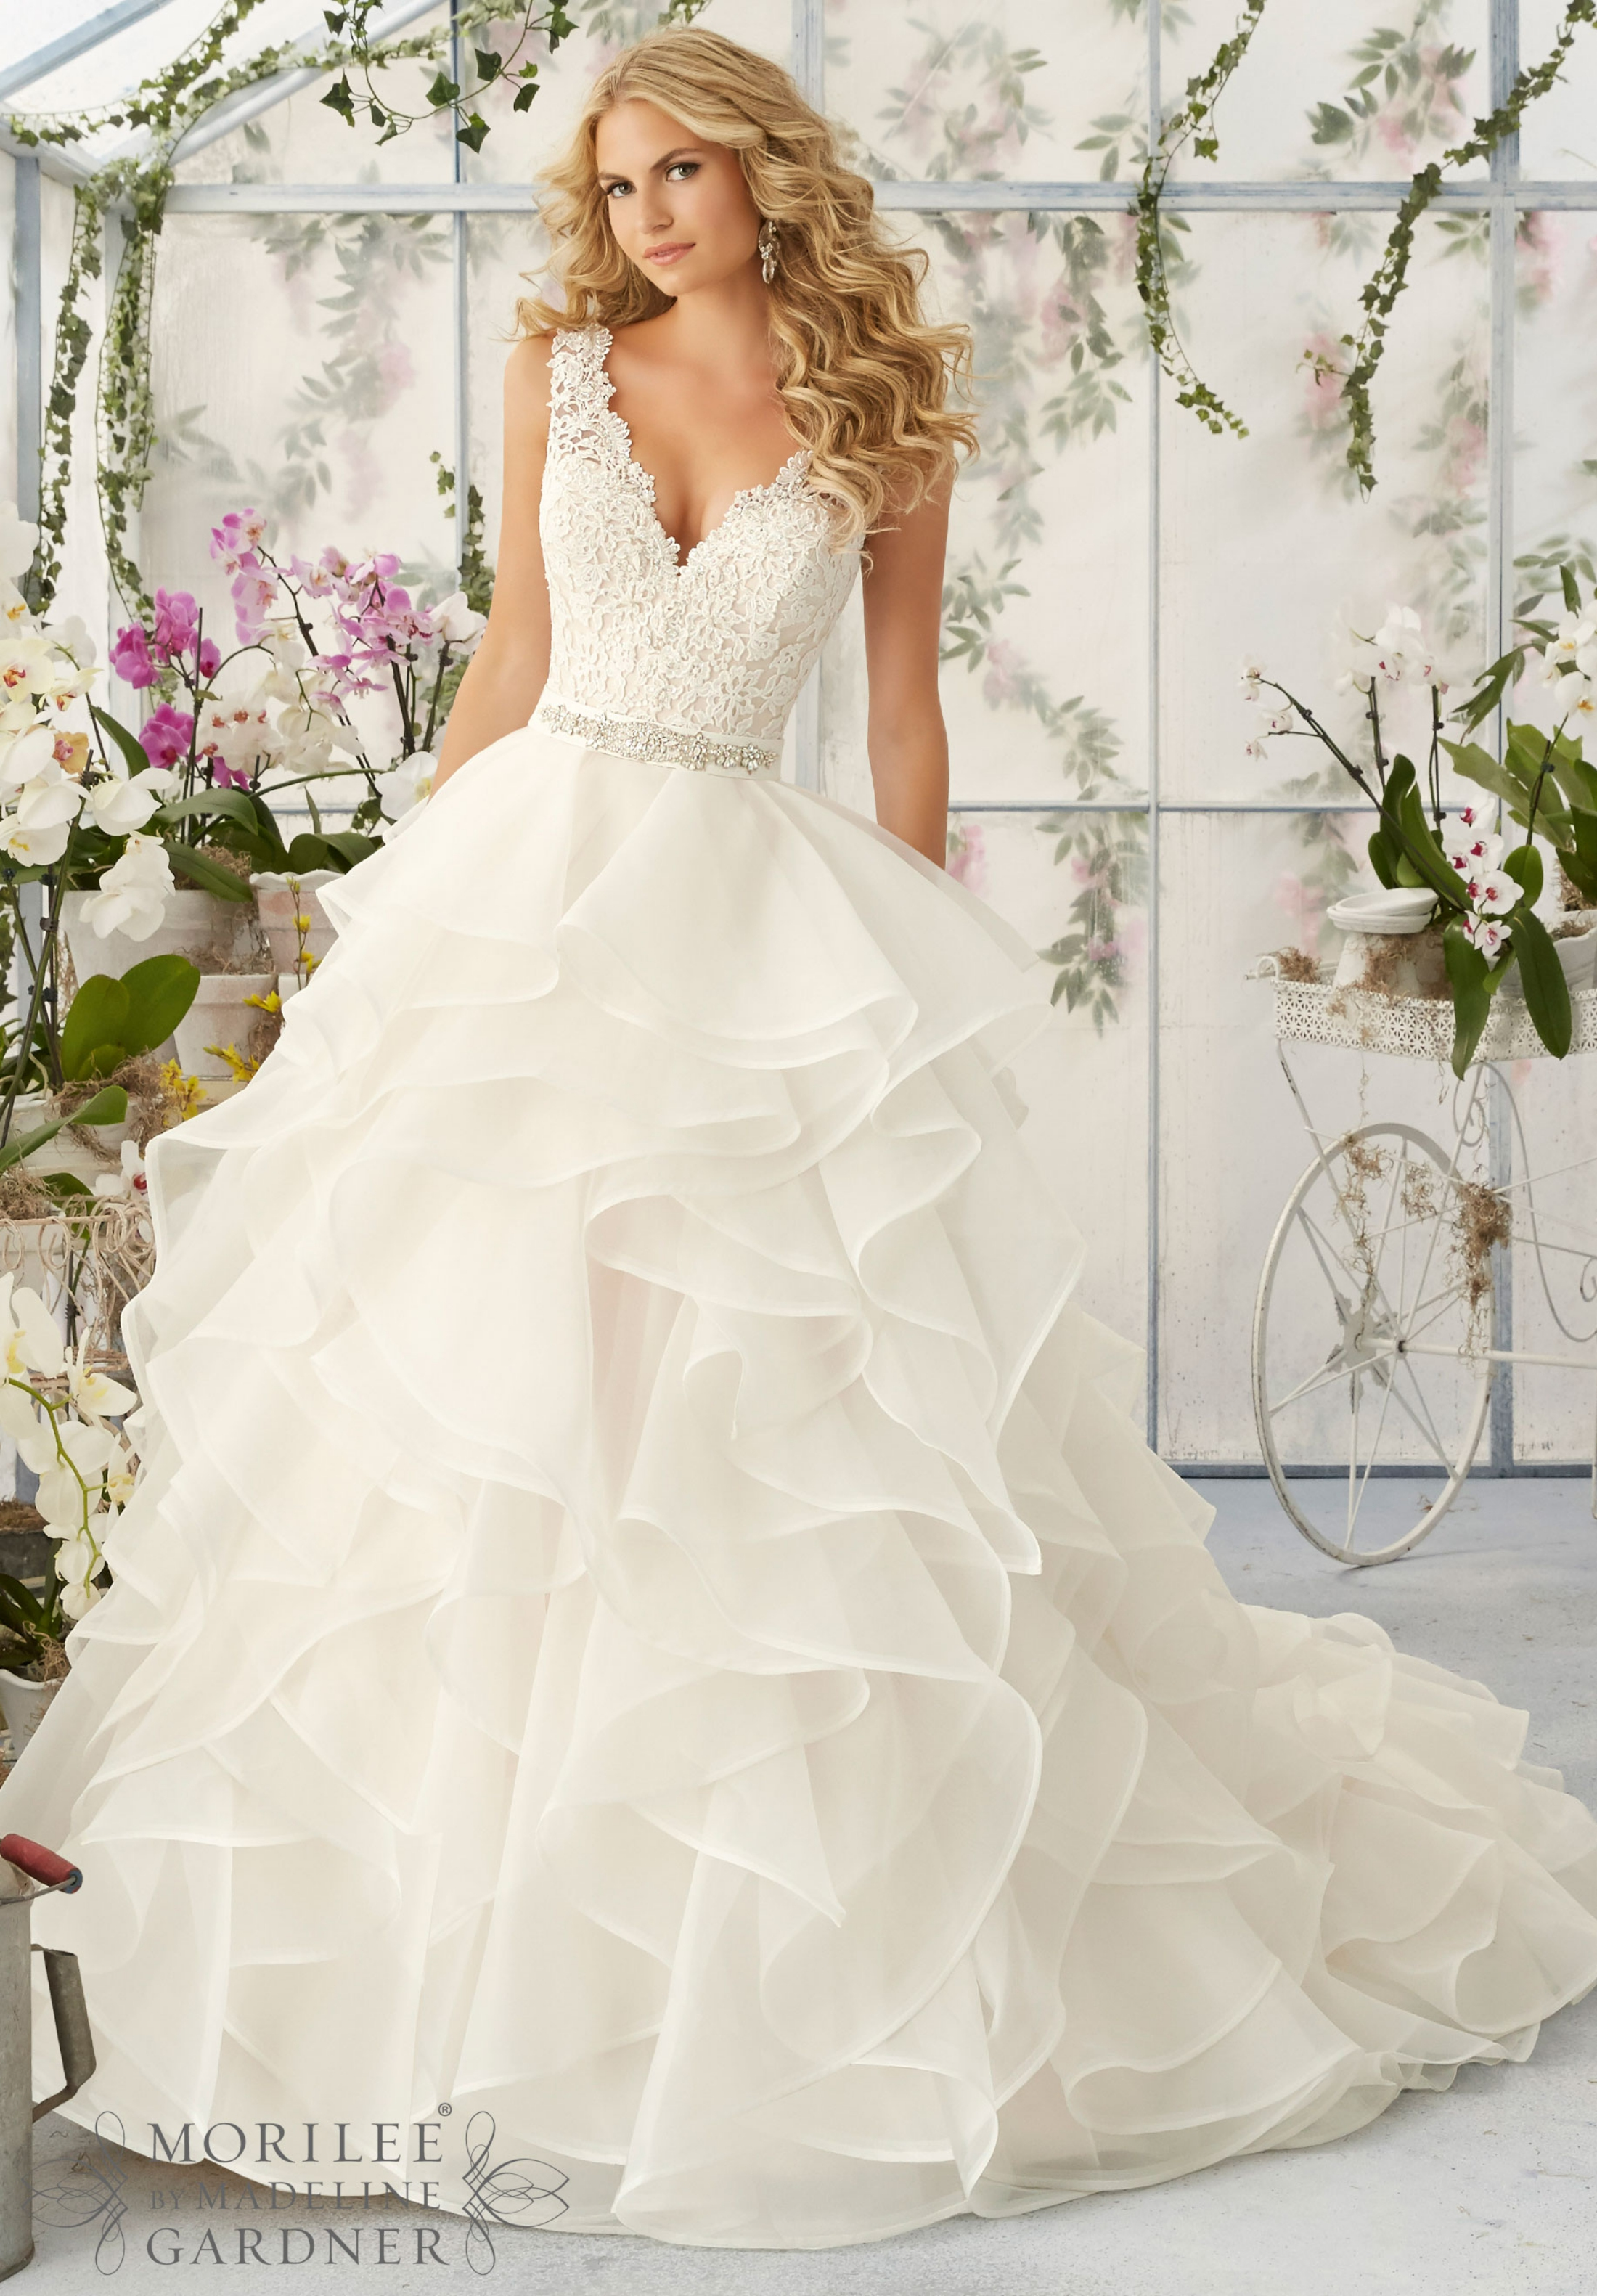 14 Cheap Wedding Dresses Under 100  Getfashionideasm. Big Puffy Beautiful Wedding Dresses. Retro Wedding Dress Shops London. Wedding Dresses Over 50s Uk. Wedding Guest Dresses Buy Online. Tropical Wedding Bridesmaid Dresses. Vintage Lace Short Wedding Dresses Uk. Cheap Wedding Dresses Ottawa. Strapless Wedding Gown Catholic Church